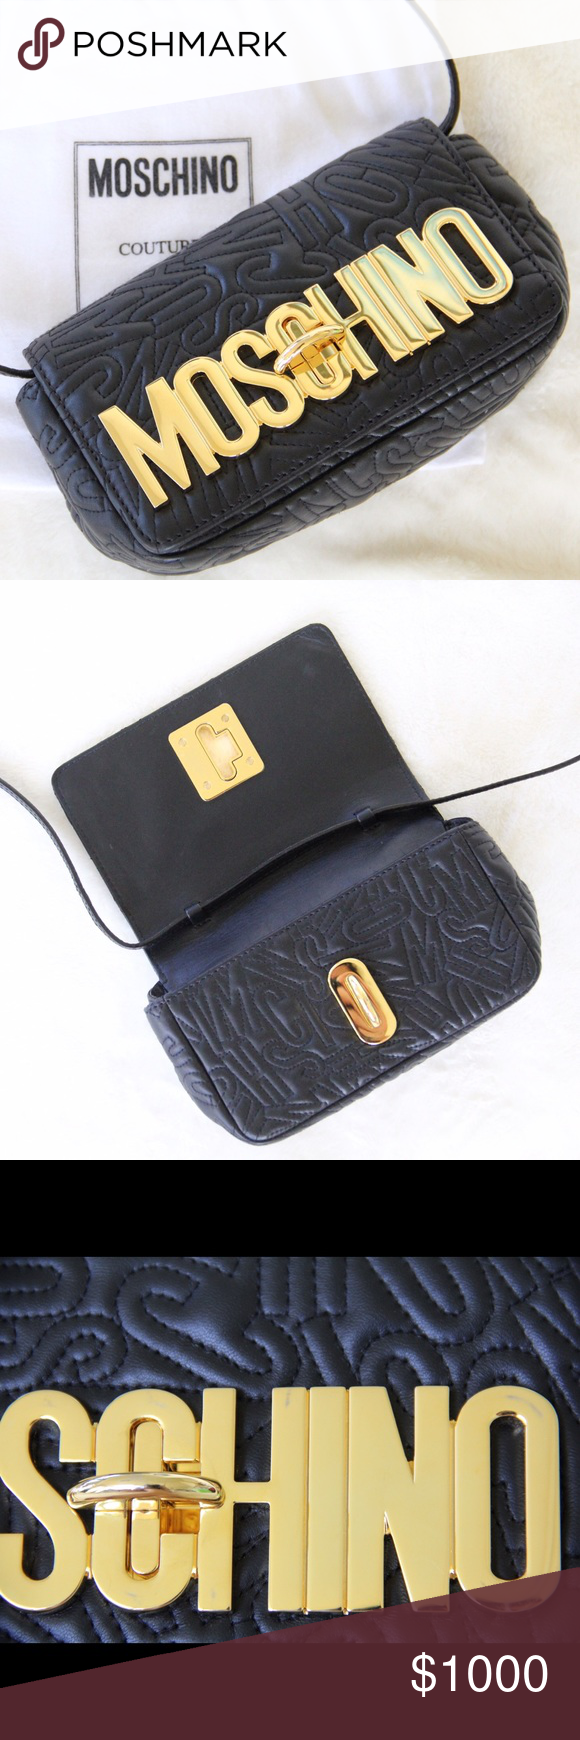 Moschino Logo Embossed Mini Crossbody Purse ✨ Black sheepskin with stitched logo ✨Gold- tone logo plaque with fold over top and twist lock closure ✨ Adjustable shoulder strap ✨ Measurements- Height: 10cm, Width: 20cm, Depth: 8cm, Strap: 60cm ✨Slight scratches on logo, hardly noticeable (shown in third photo ) ✨Used a few times ✨Excellent condition ✨About $1,300 w/ tax Moschino Bags Crossbody Bags